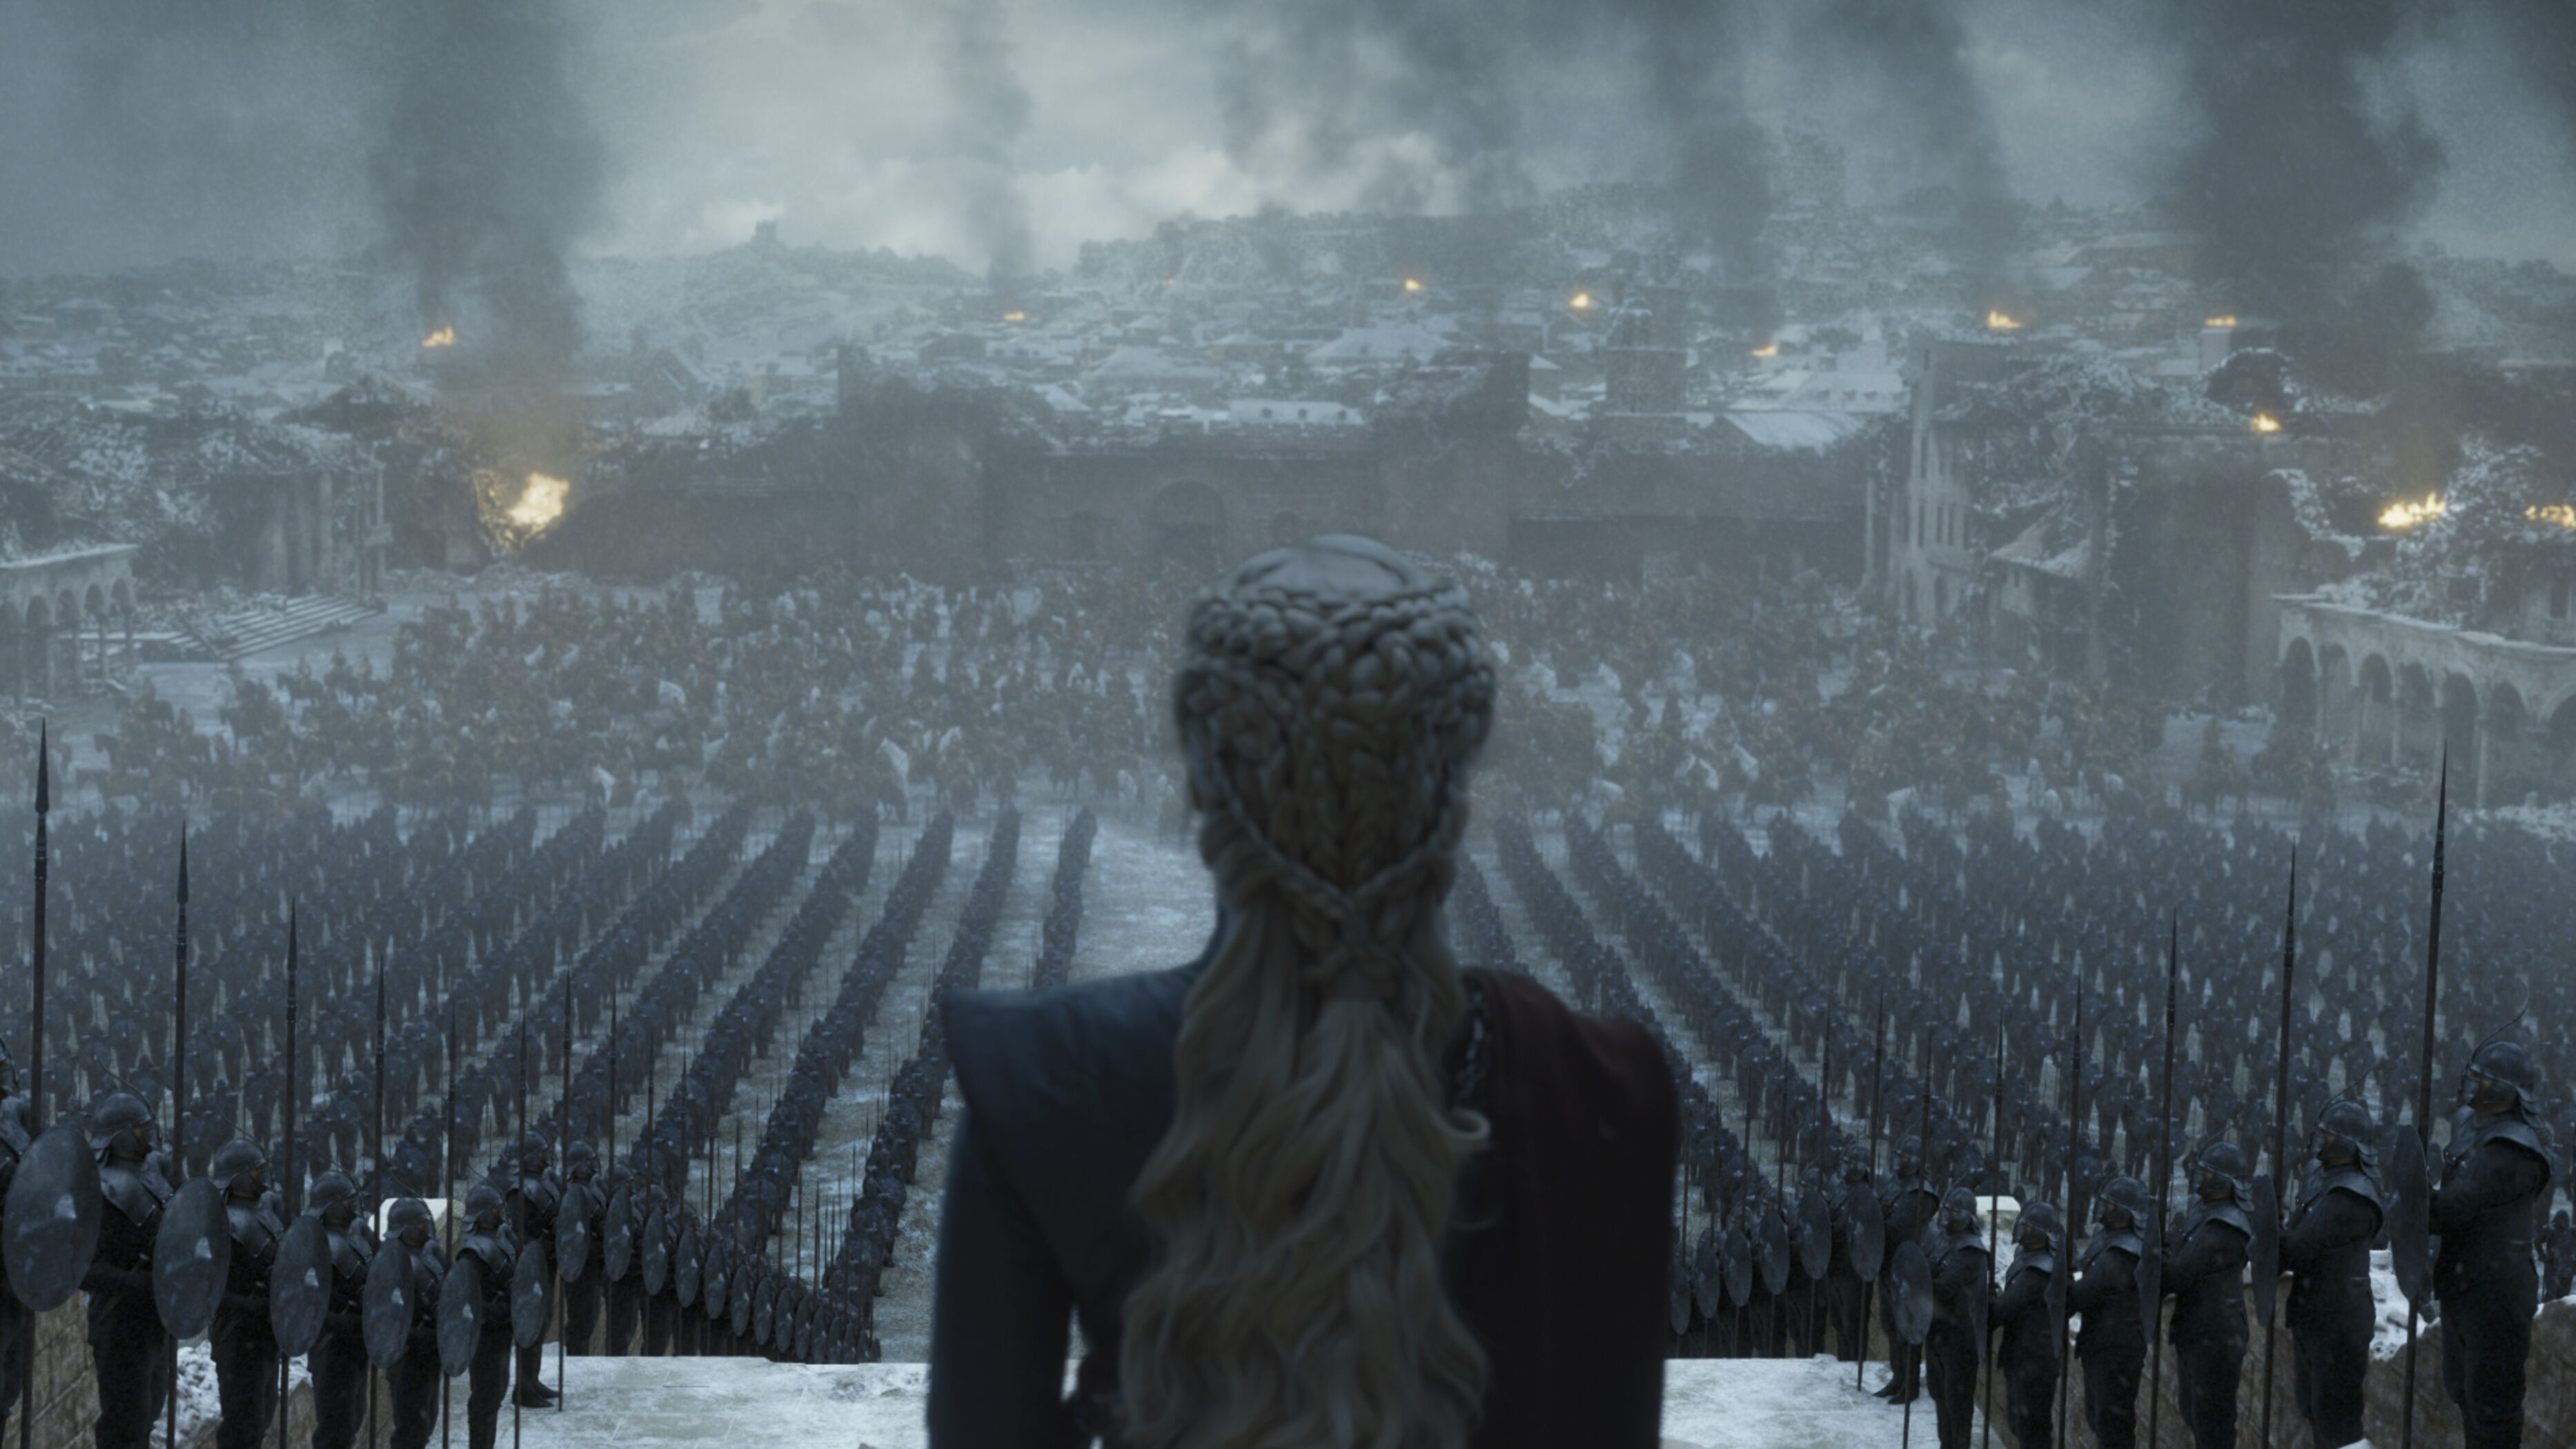 Game of Thrones finale spoilers: Episode summary according